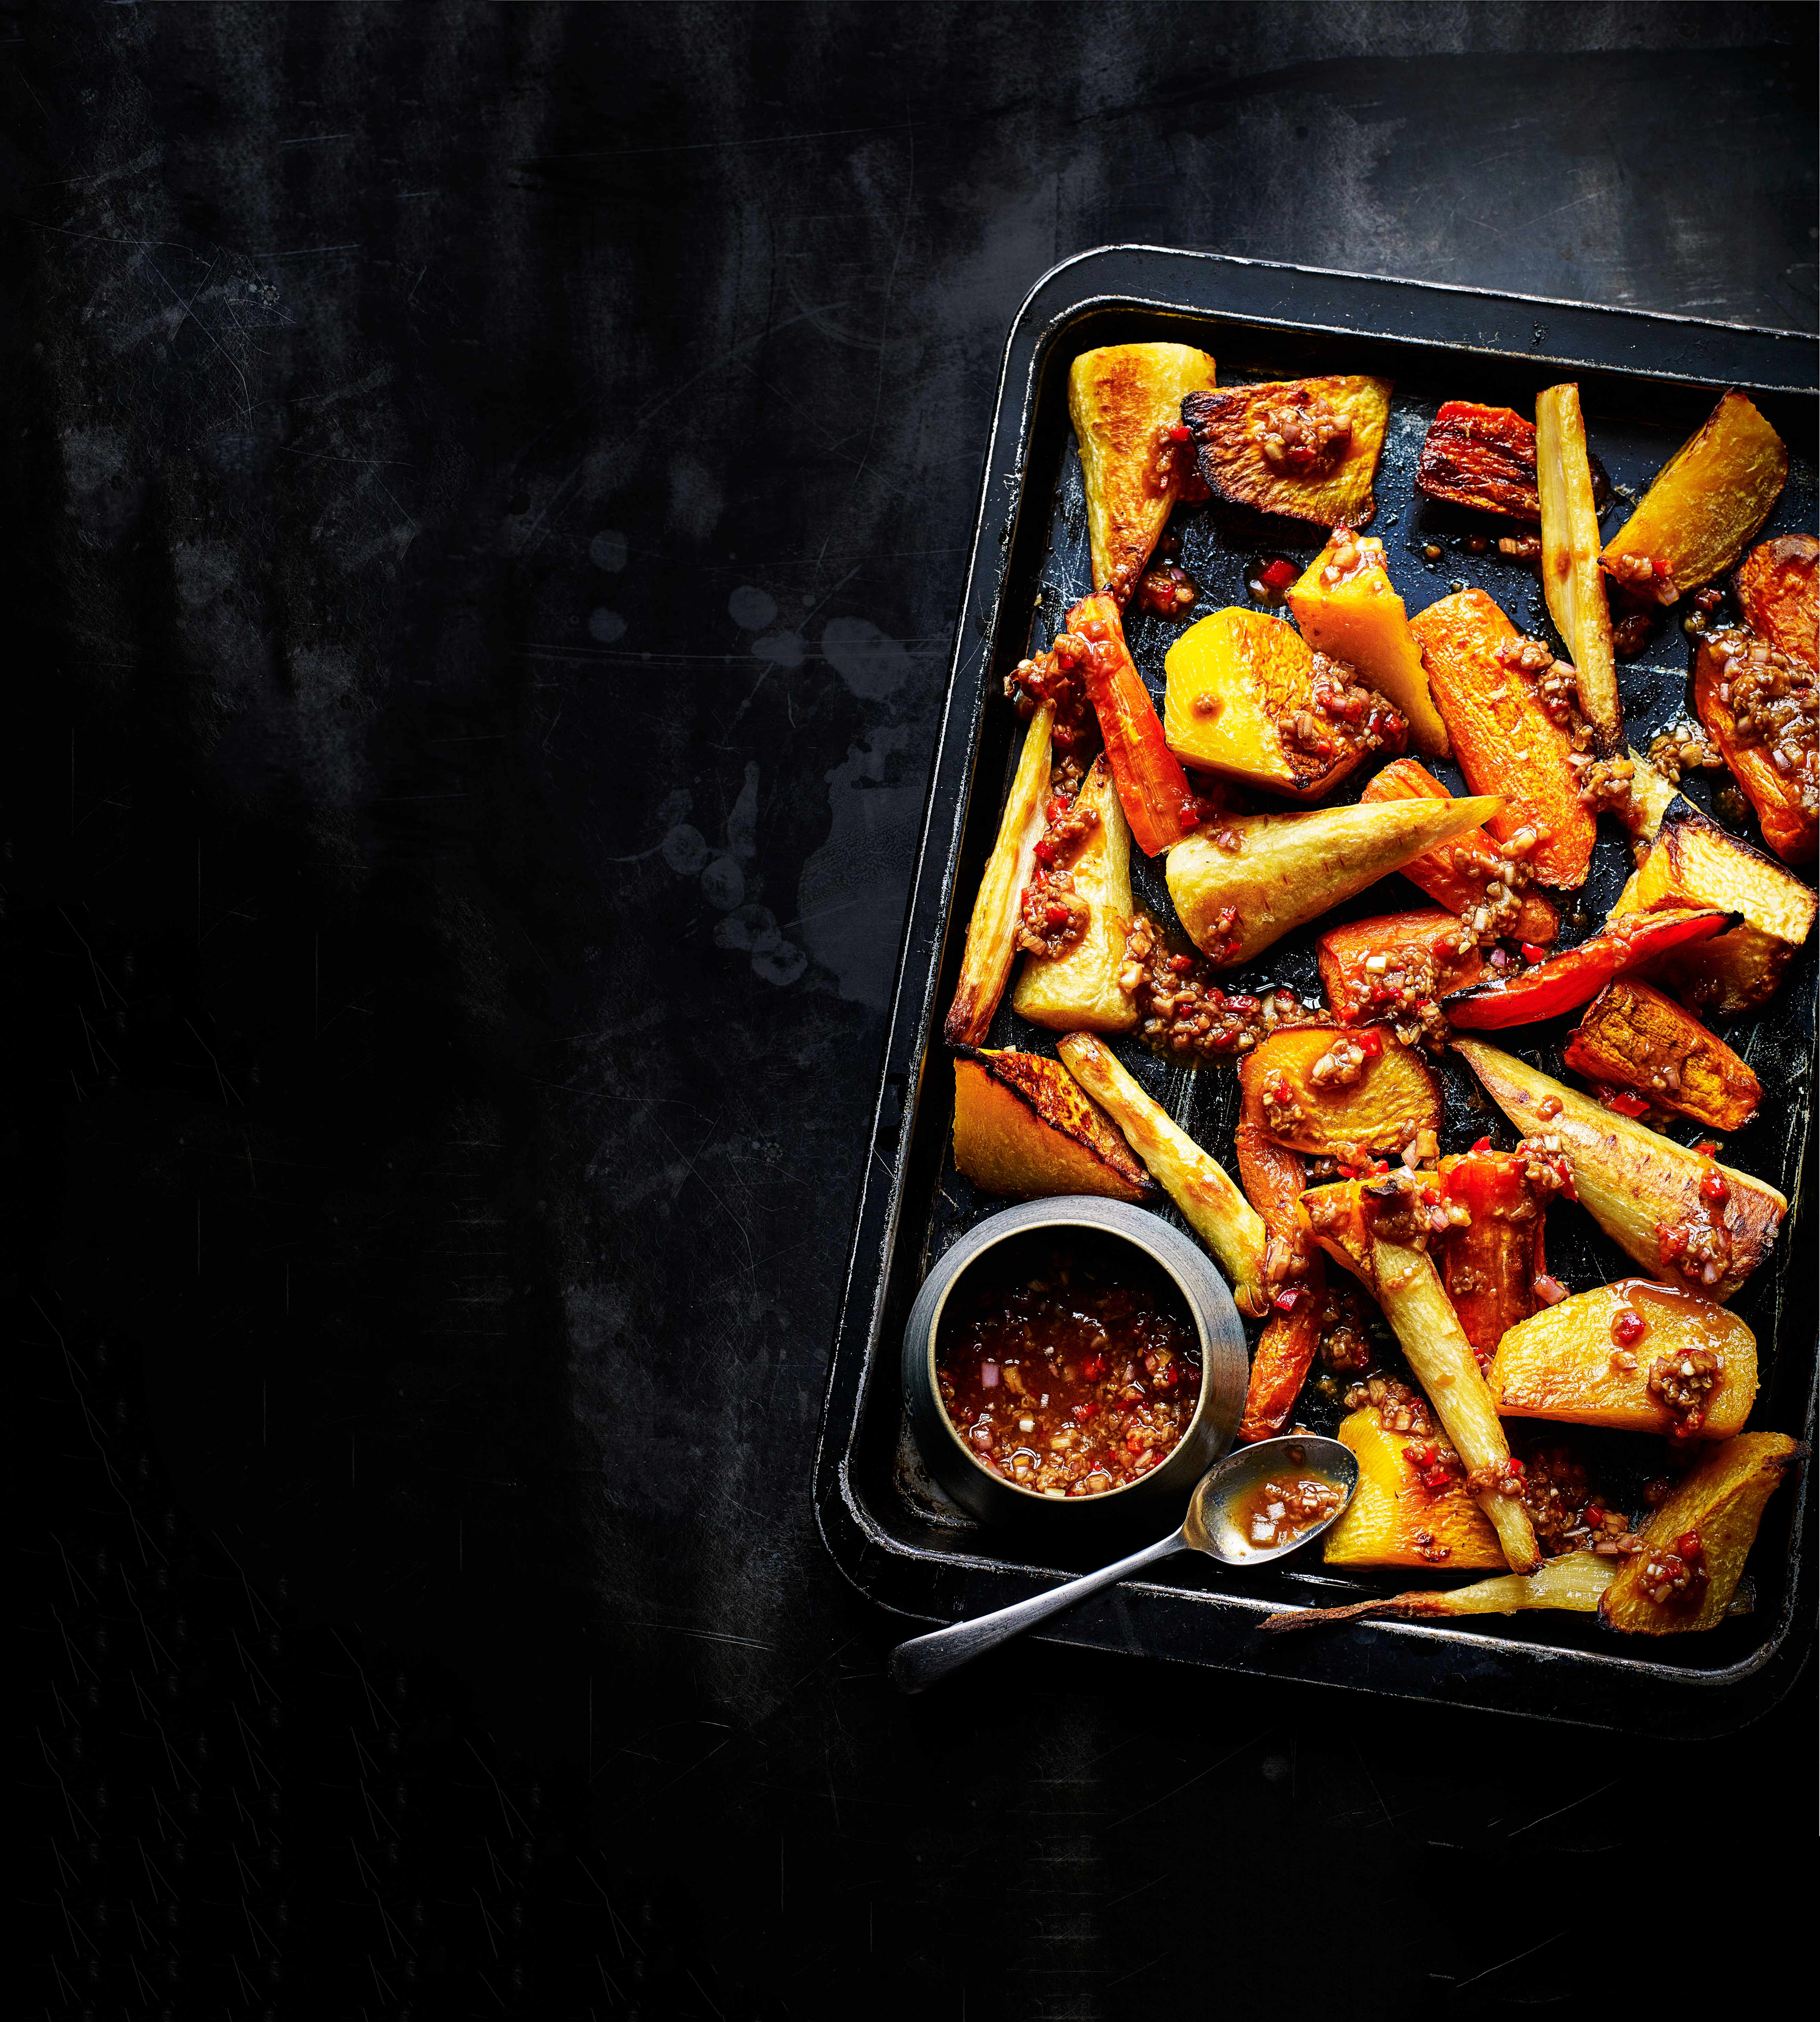 Roasted Root Vegetables With Umami Dressing